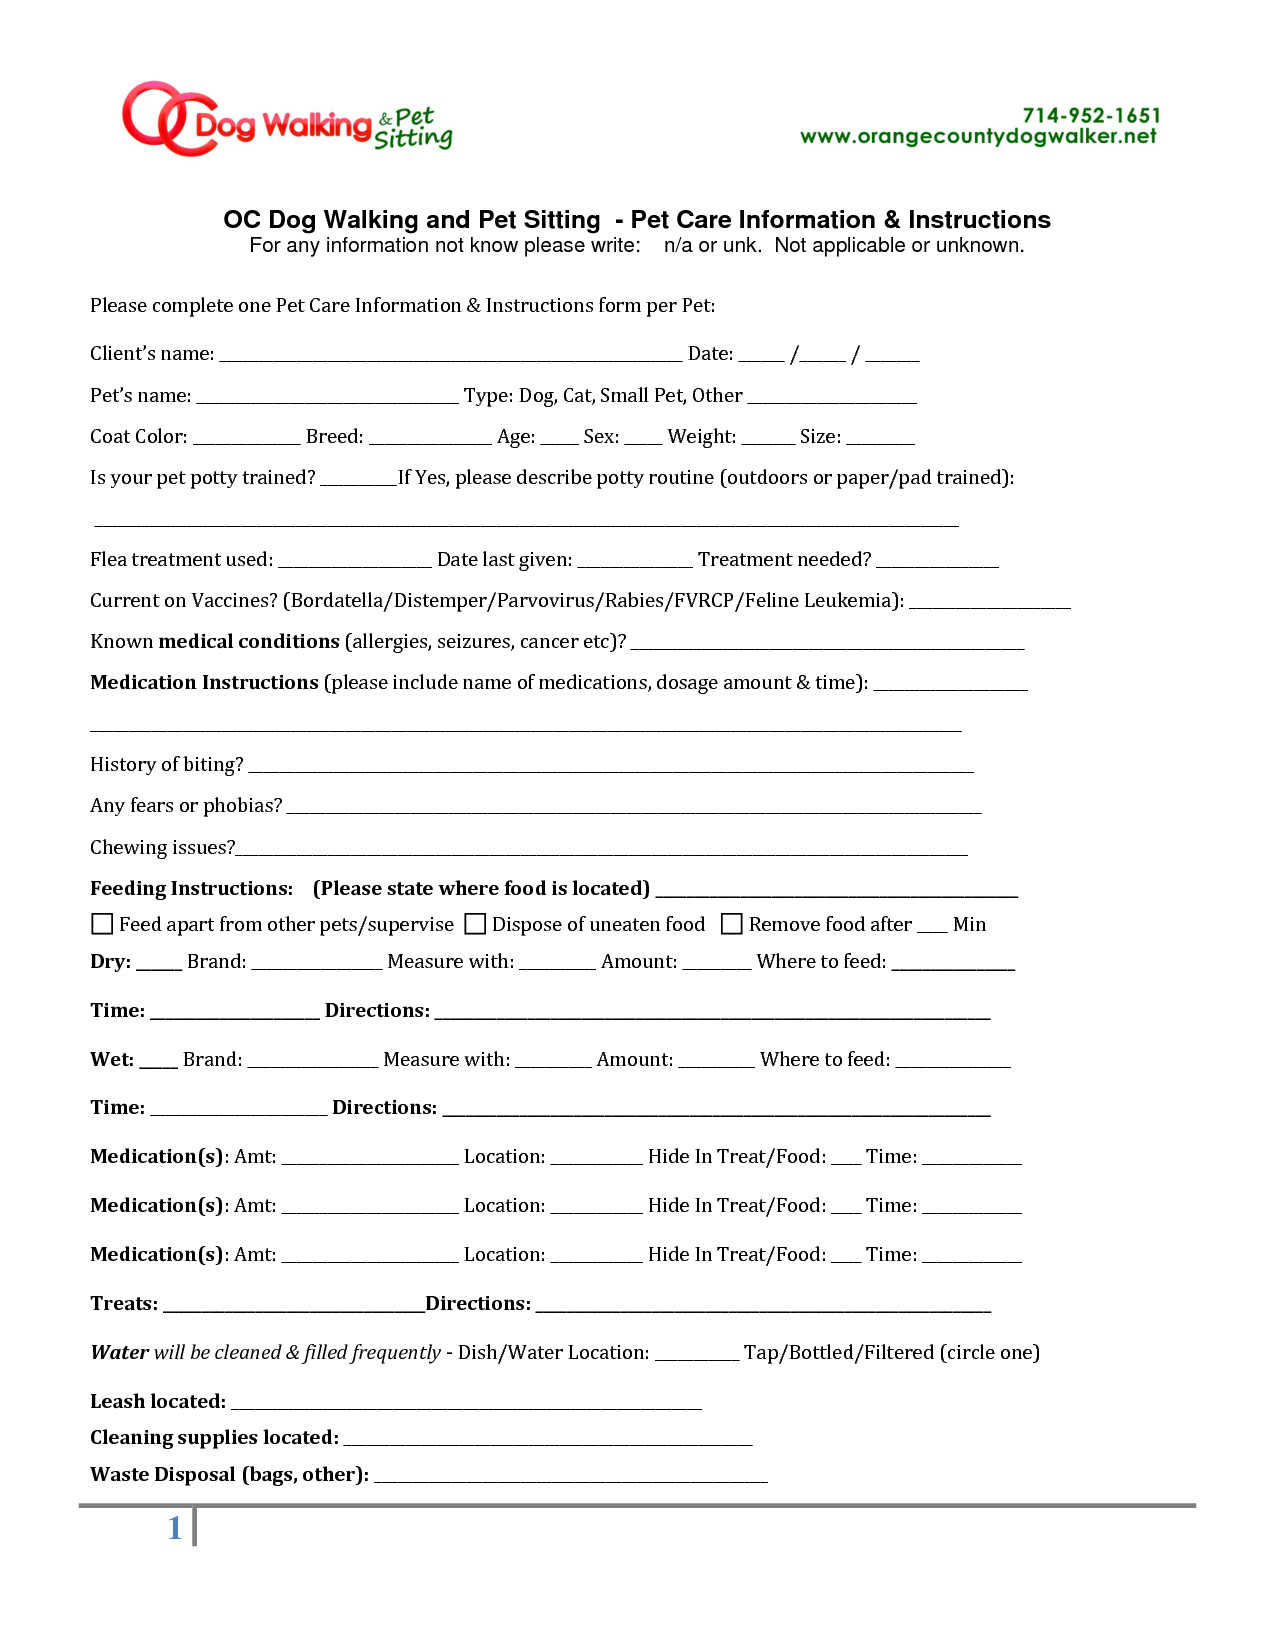 Pet sitting instruction template free oc dog walking and for Veterinary forms templates